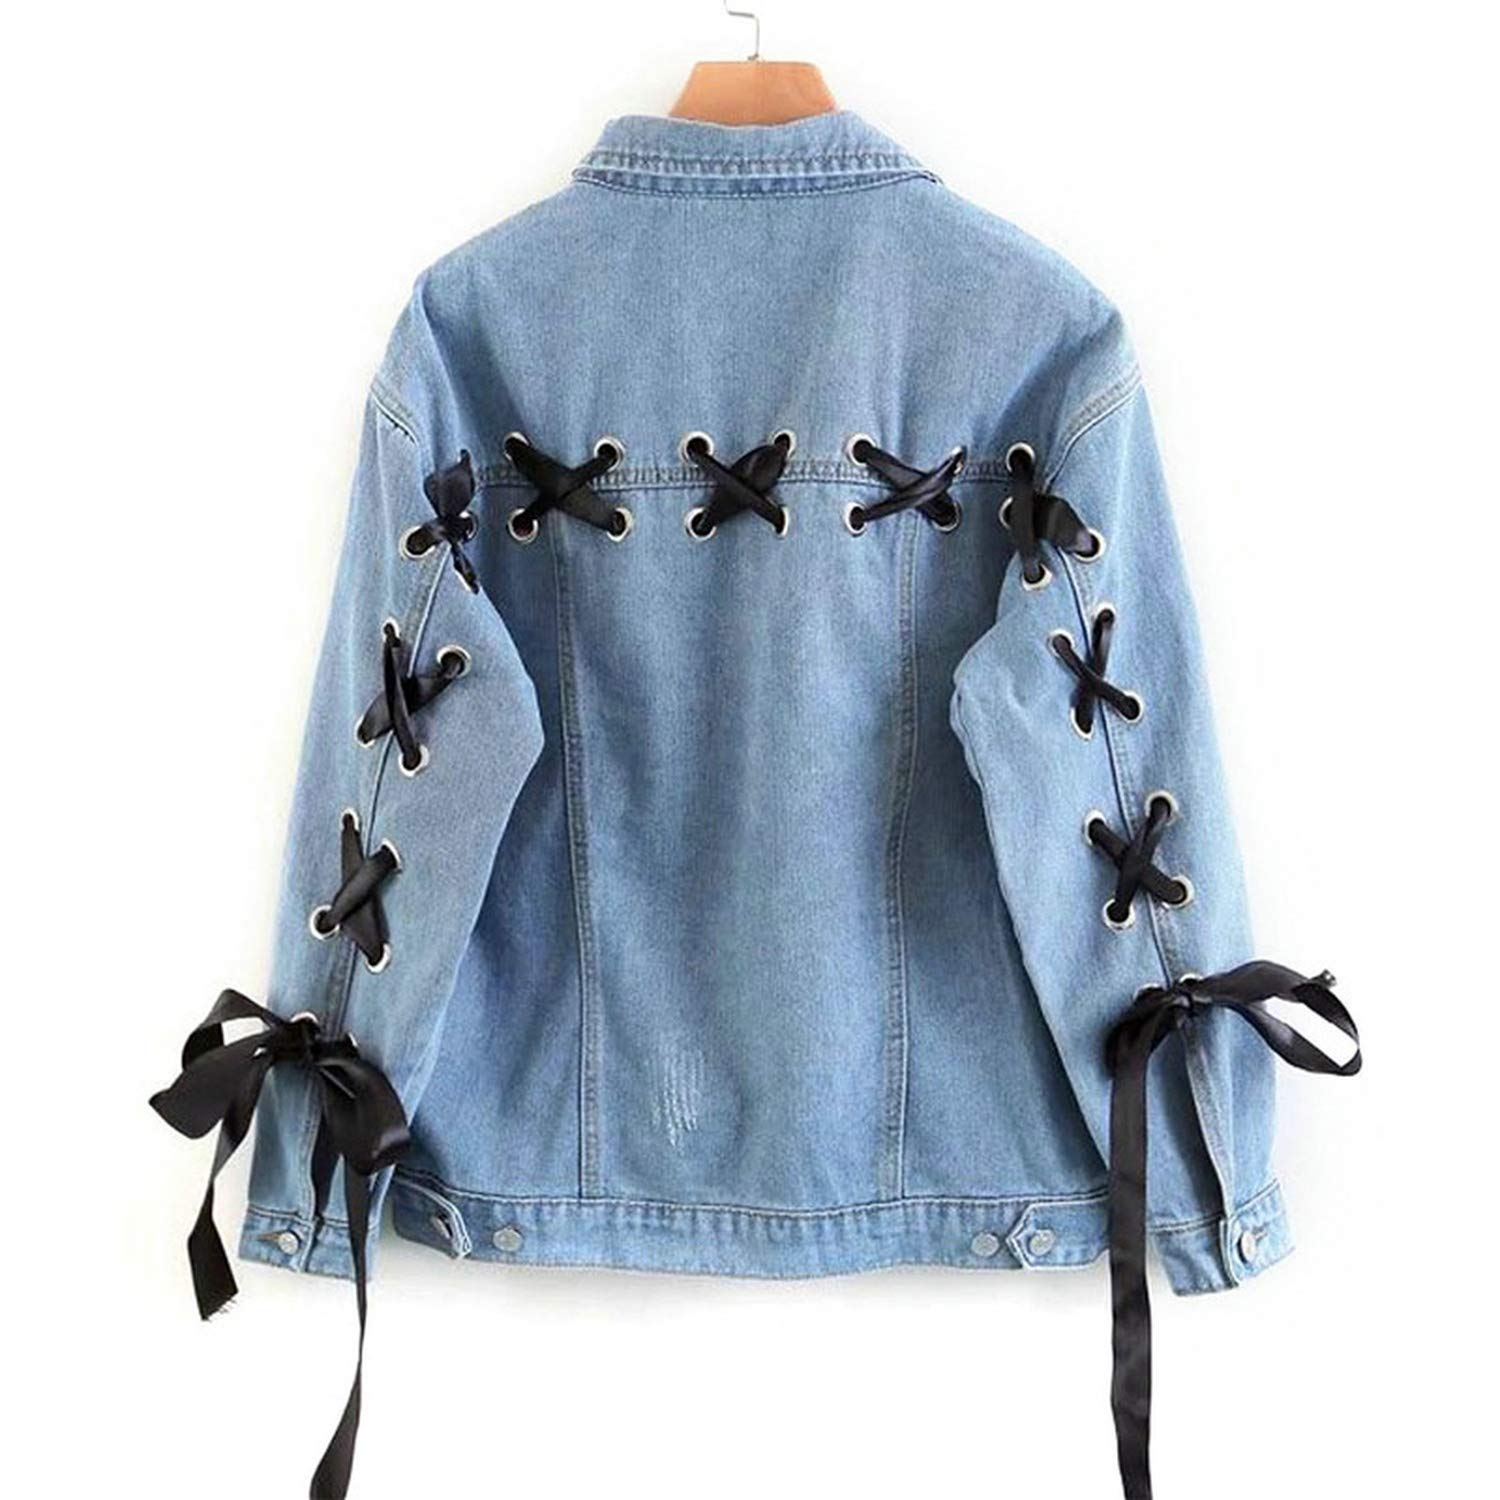 Stardust-shine Spring Classic Denim Jacket Single Breasted Casual Solid Women Loose Jean Coat